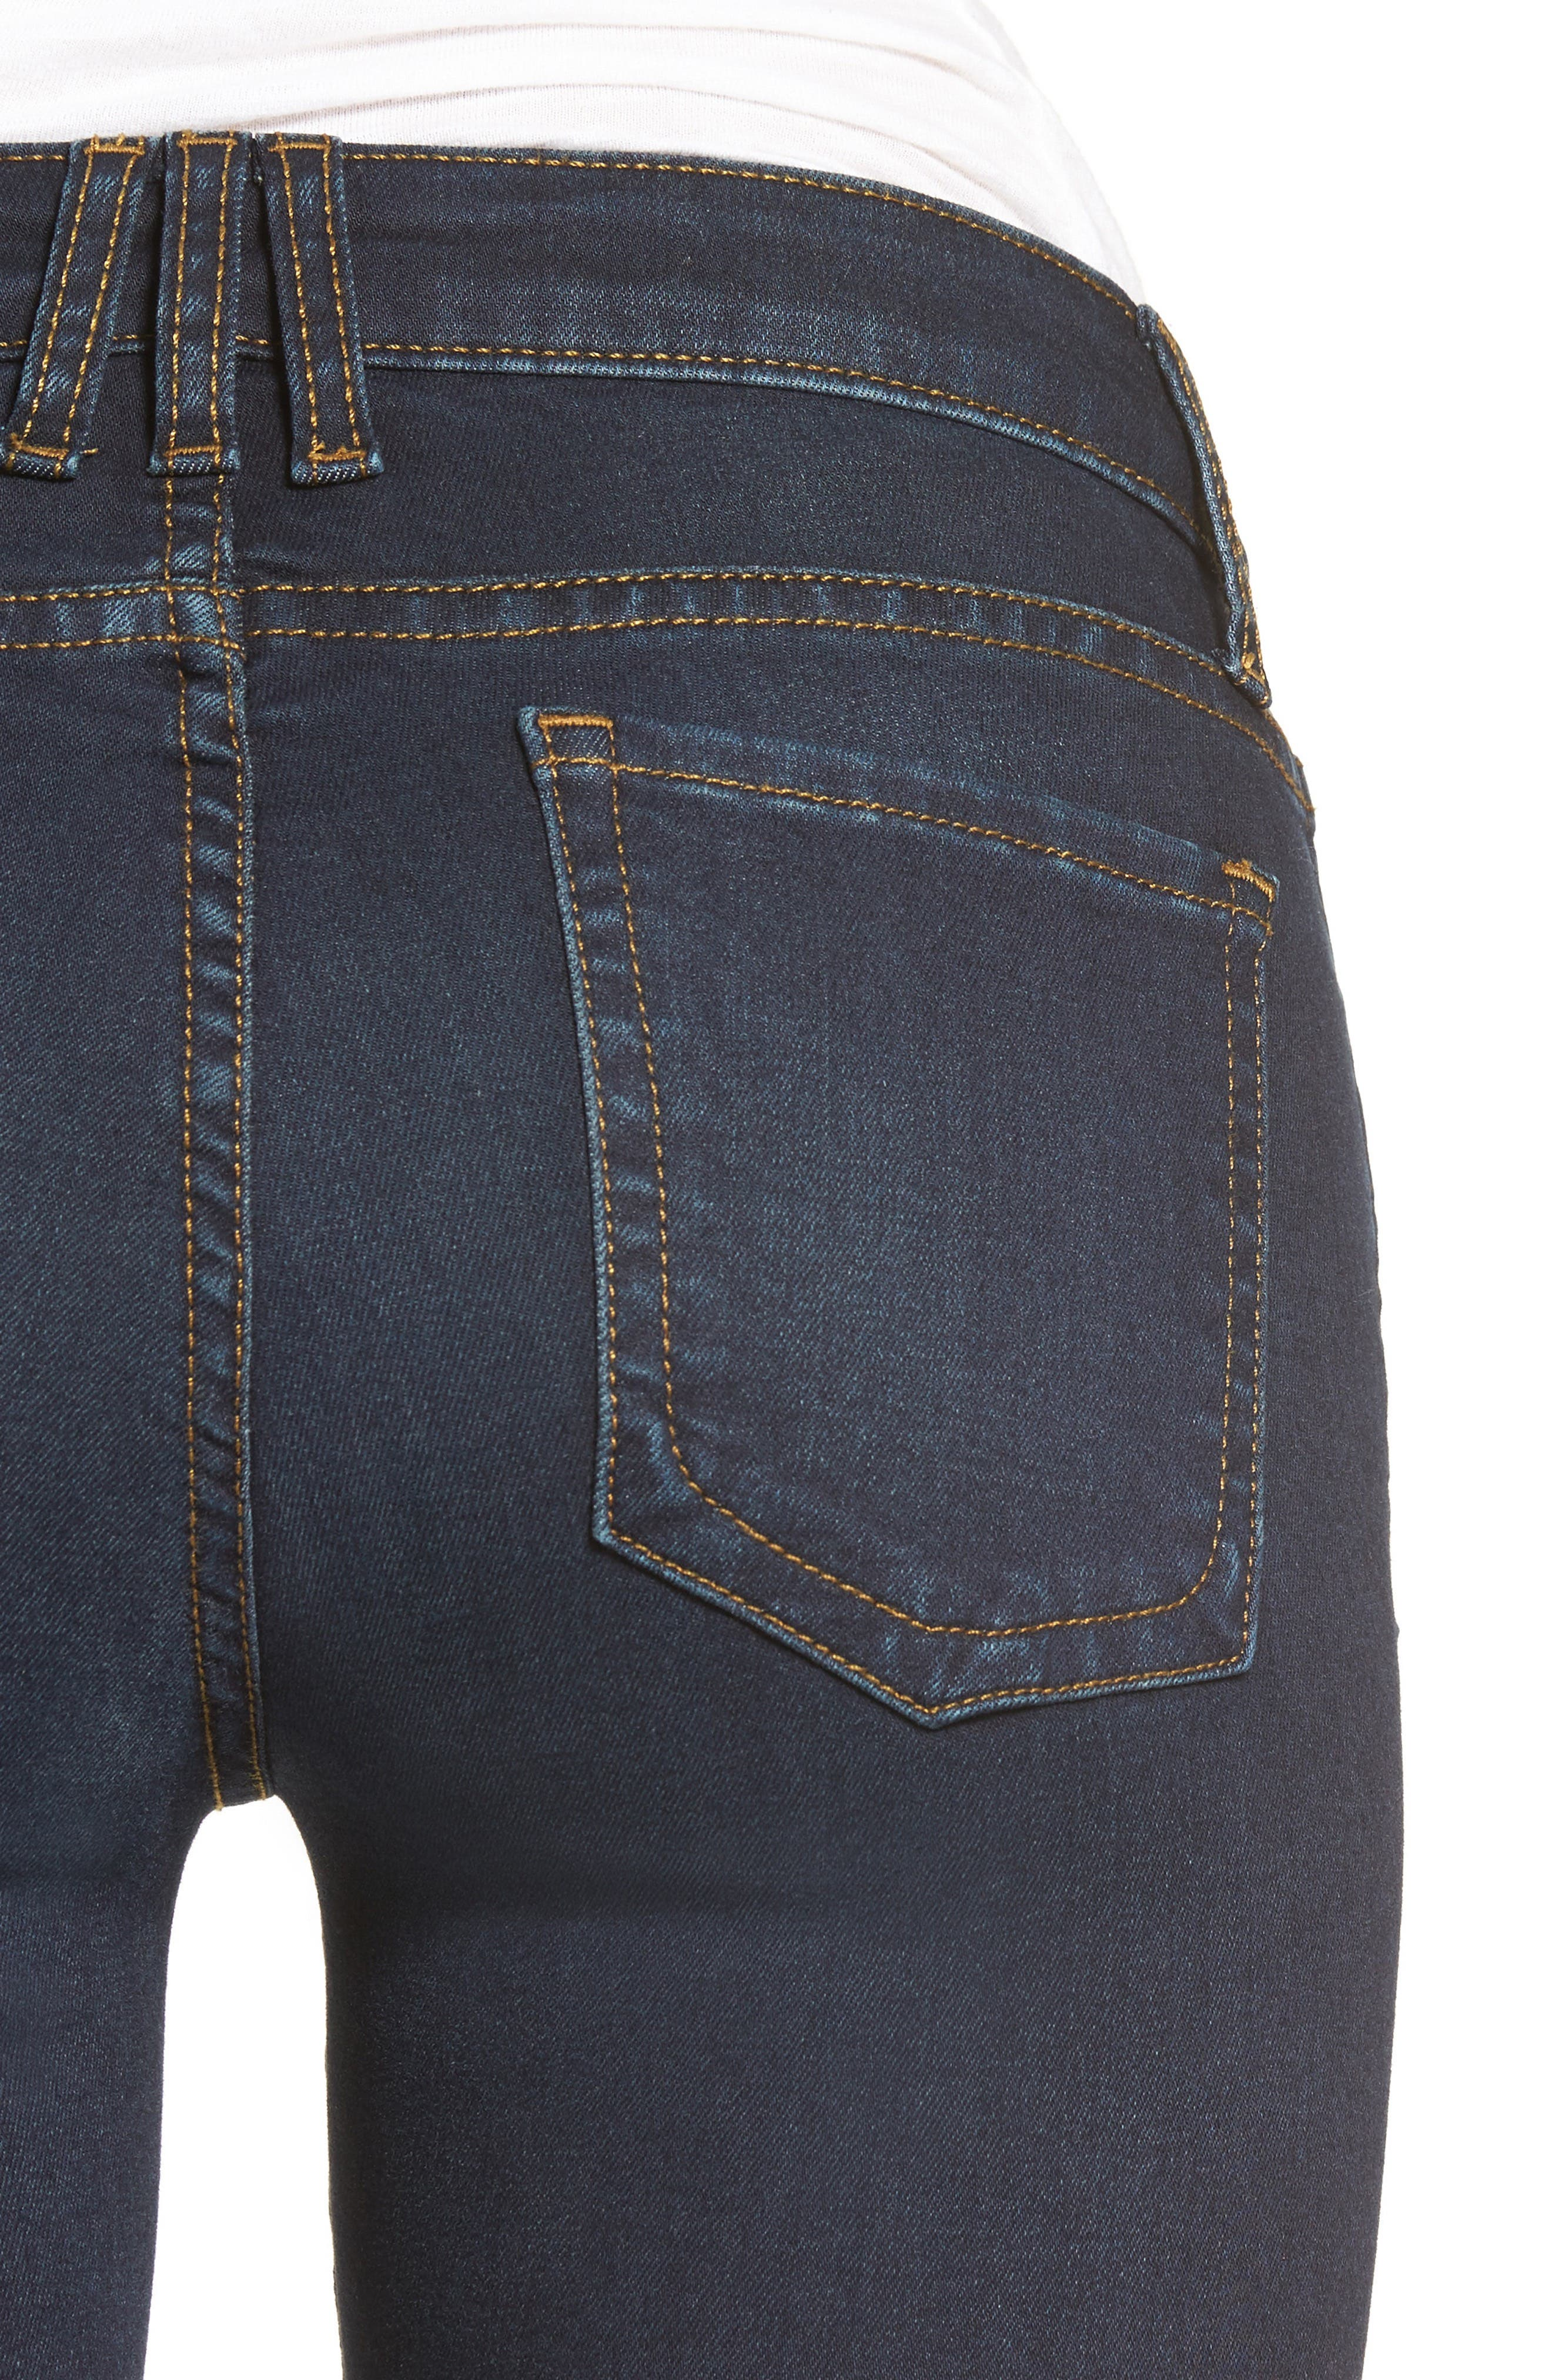 Natalie Stretch Bootleg Jeans,                             Alternate thumbnail 4, color,                             475